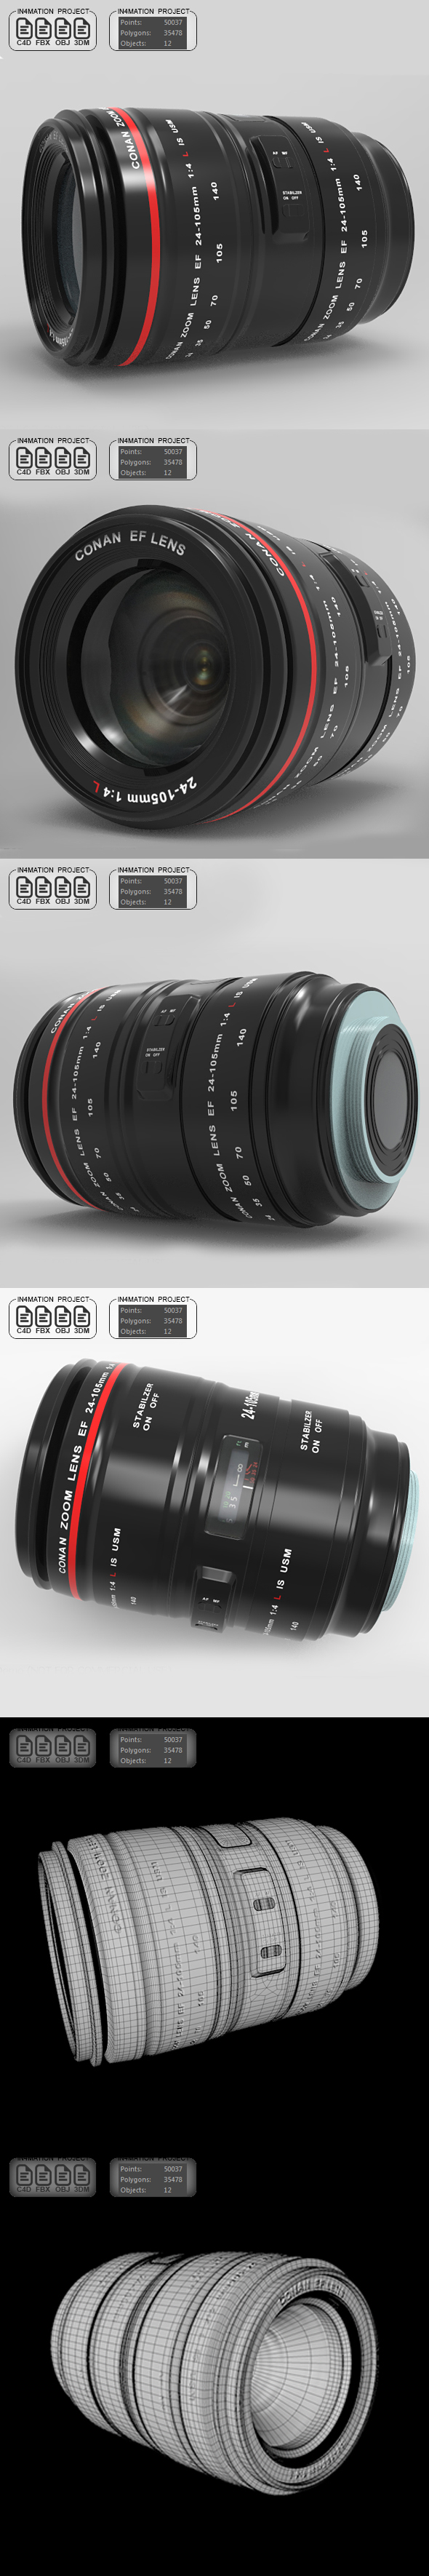 Zoom 24-105mm - 3DOcean Item for Sale